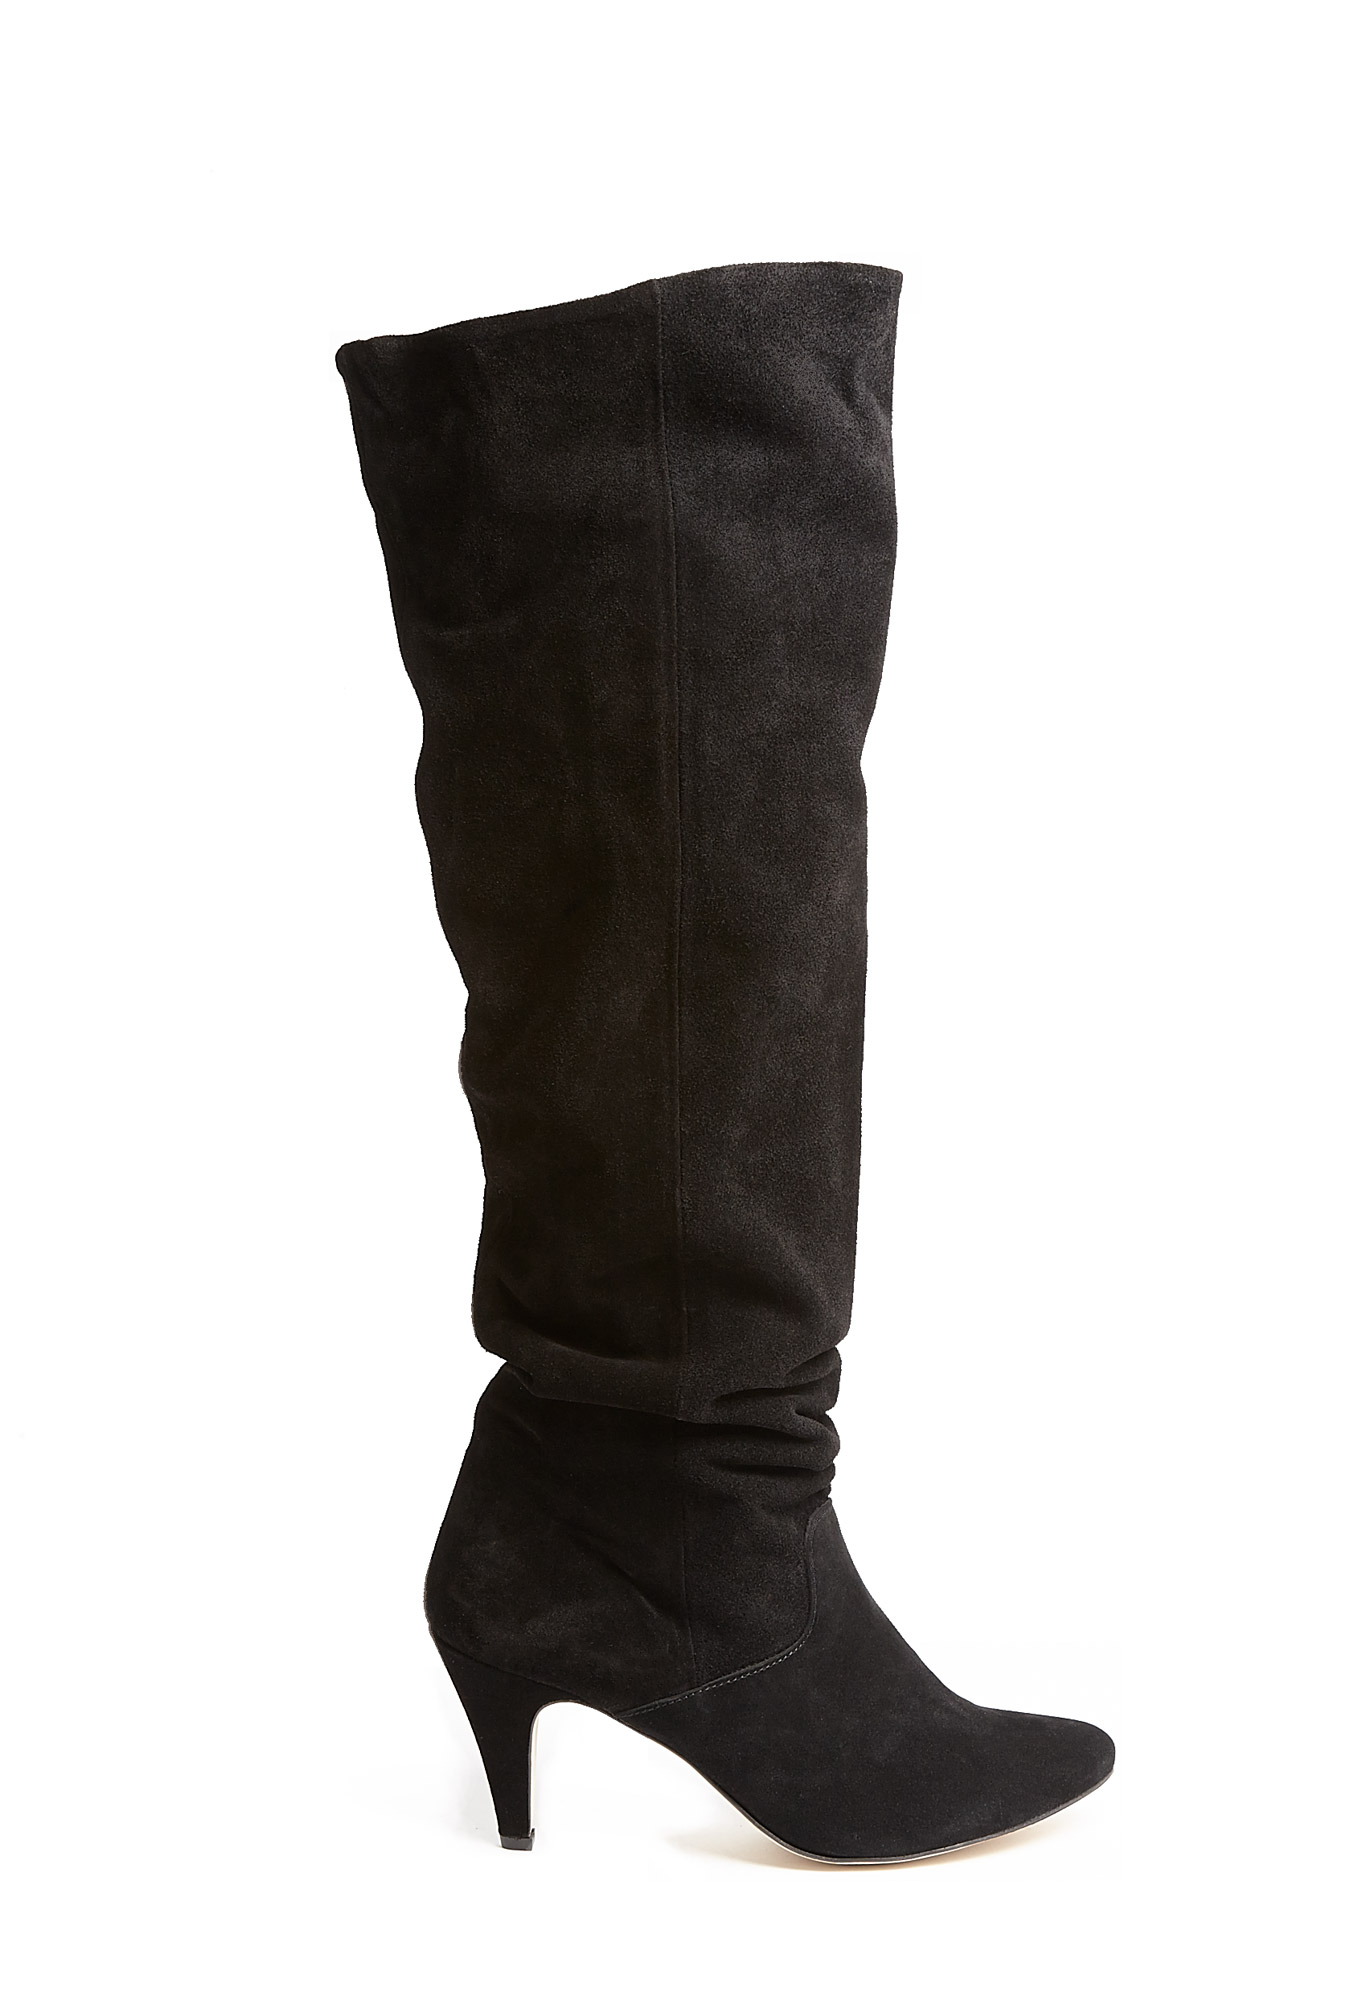 Ganni   Over The Knee Suede Boot by Ganni